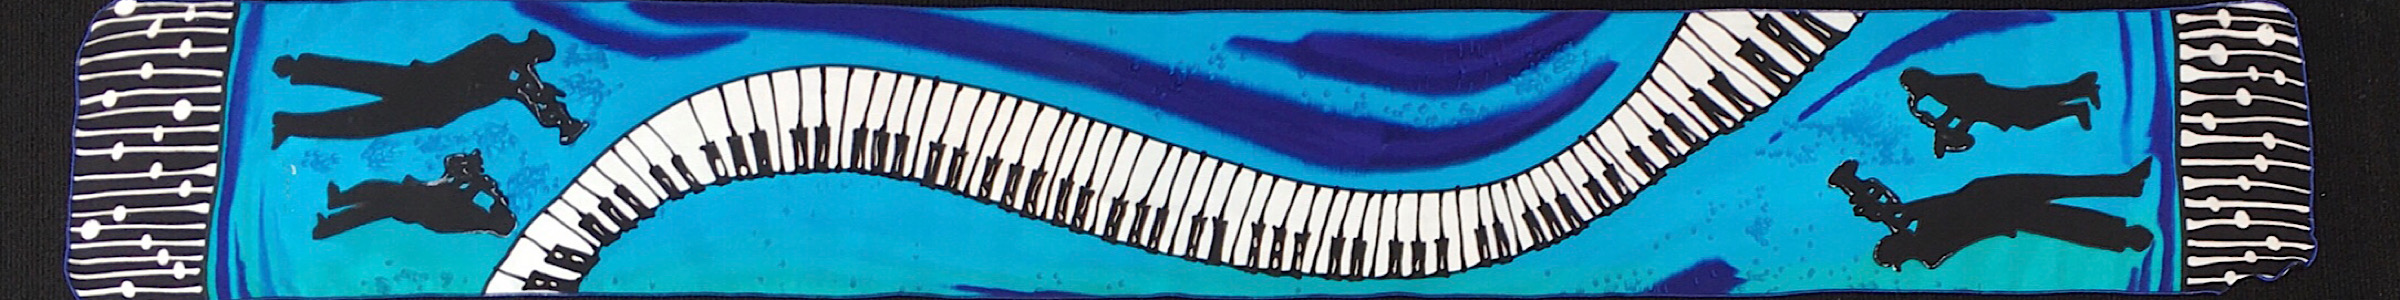 "8"" x 60""  BLUES PIANO scarf"